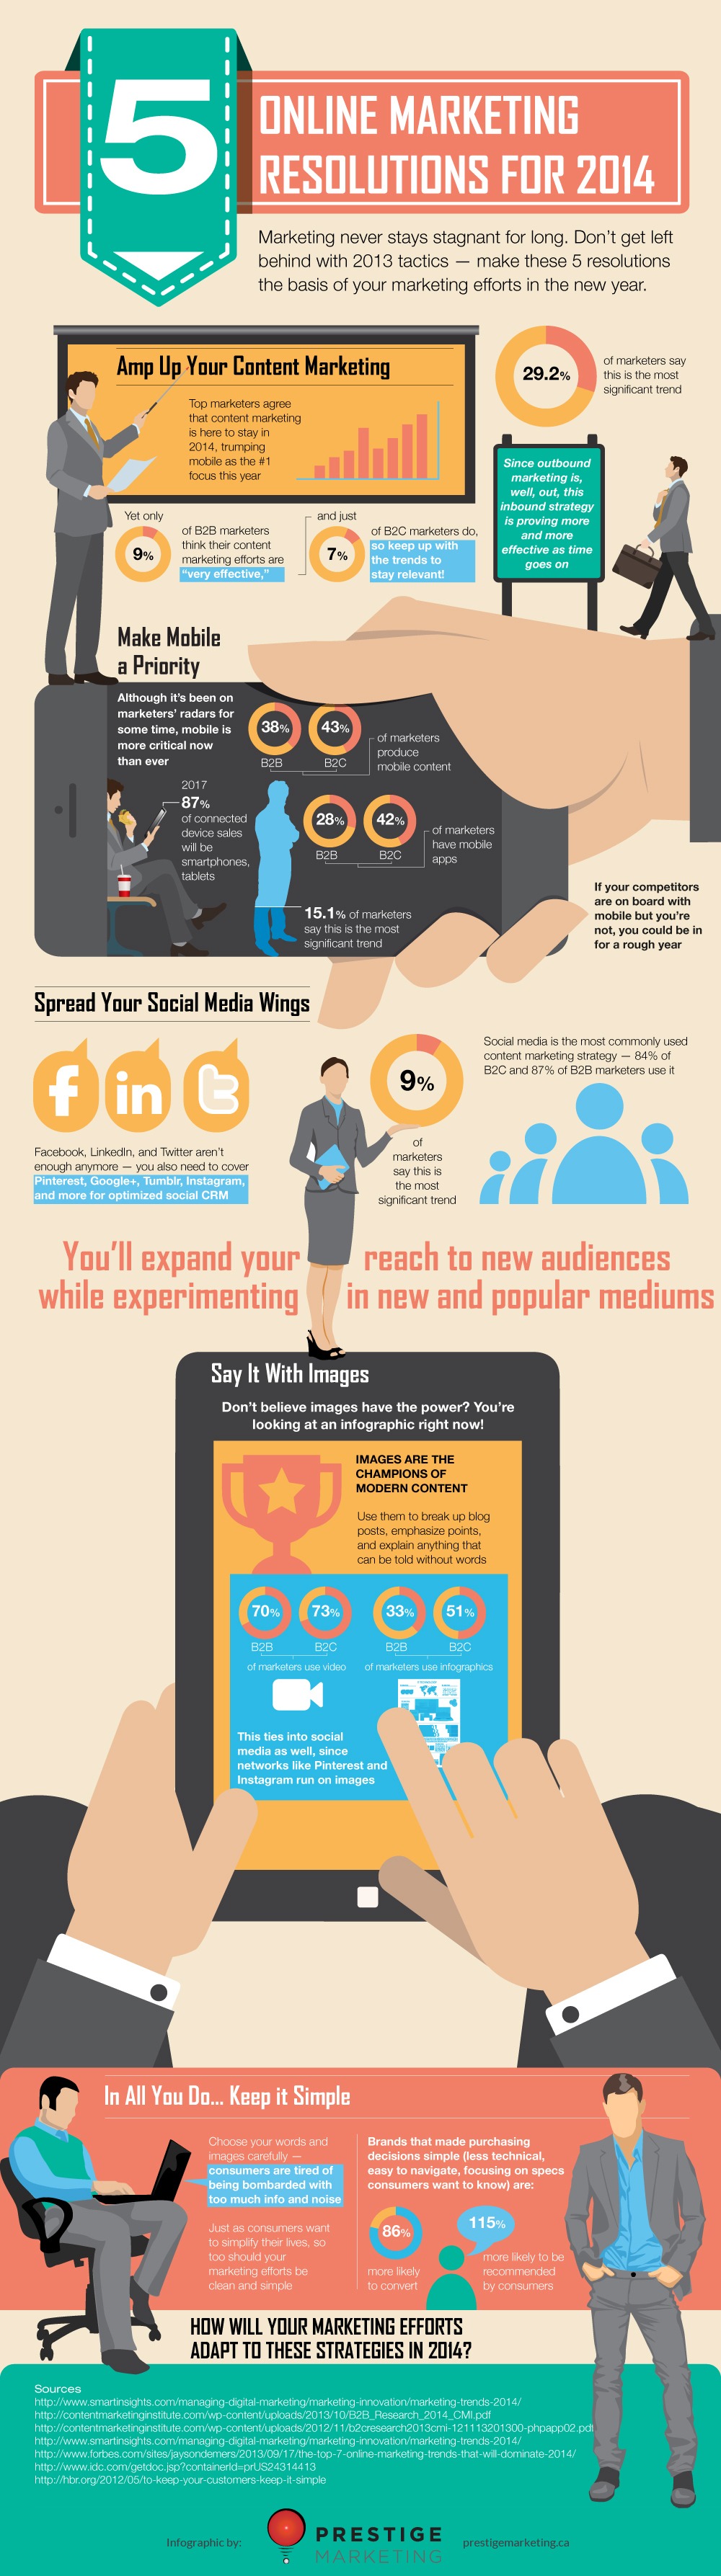 5-Online_Marketing_Resolutions_for_20141